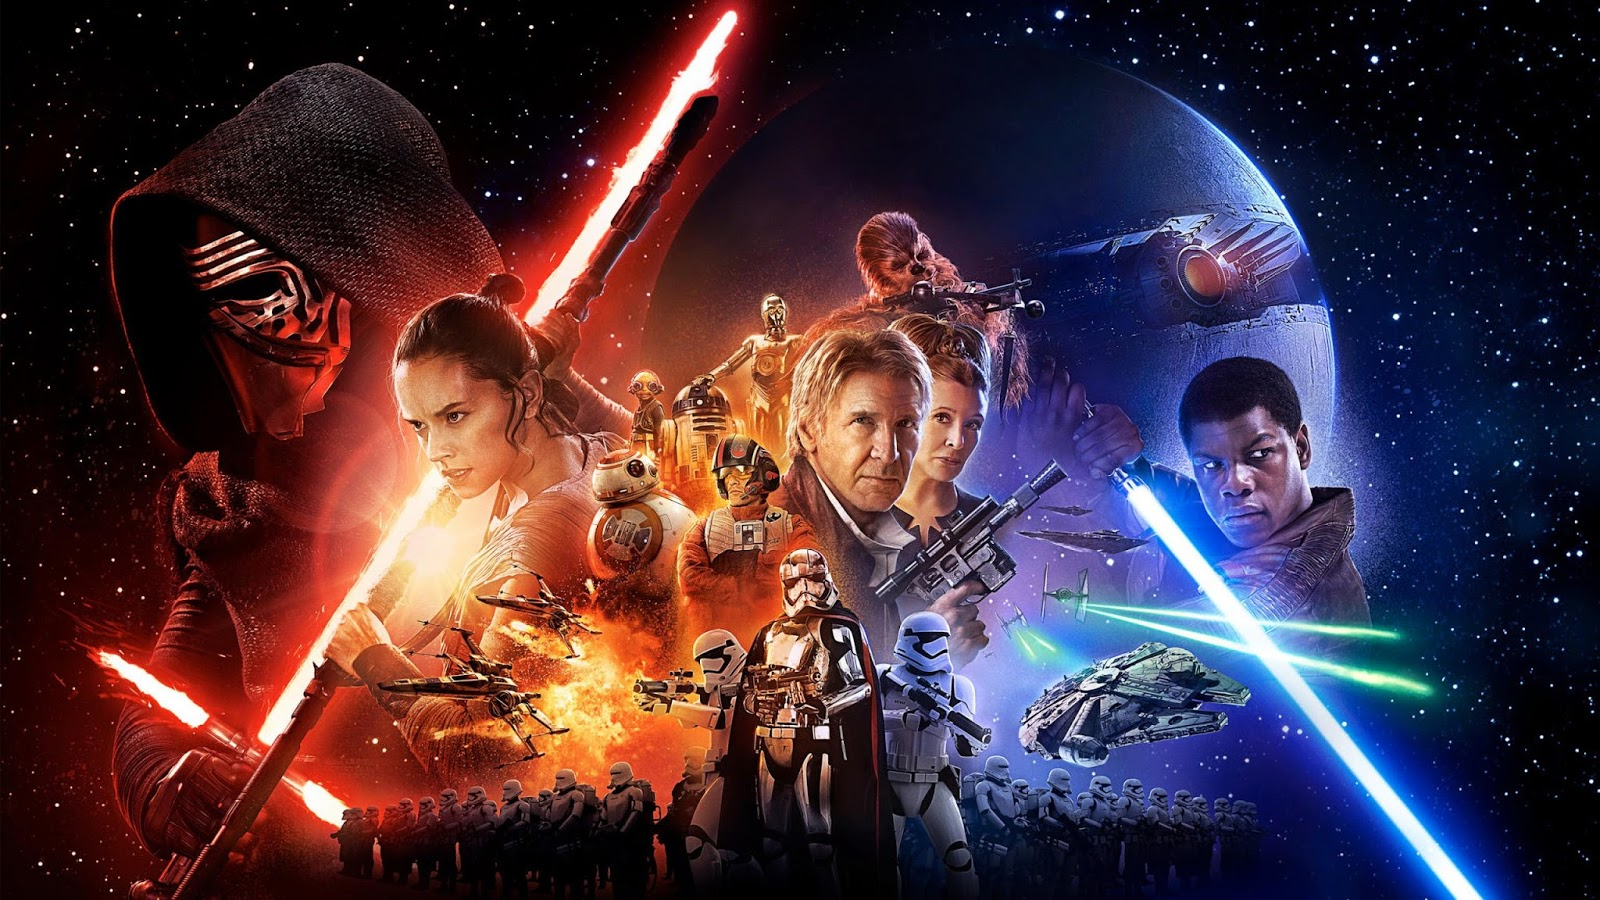 Star Wars Characters Pictures HD